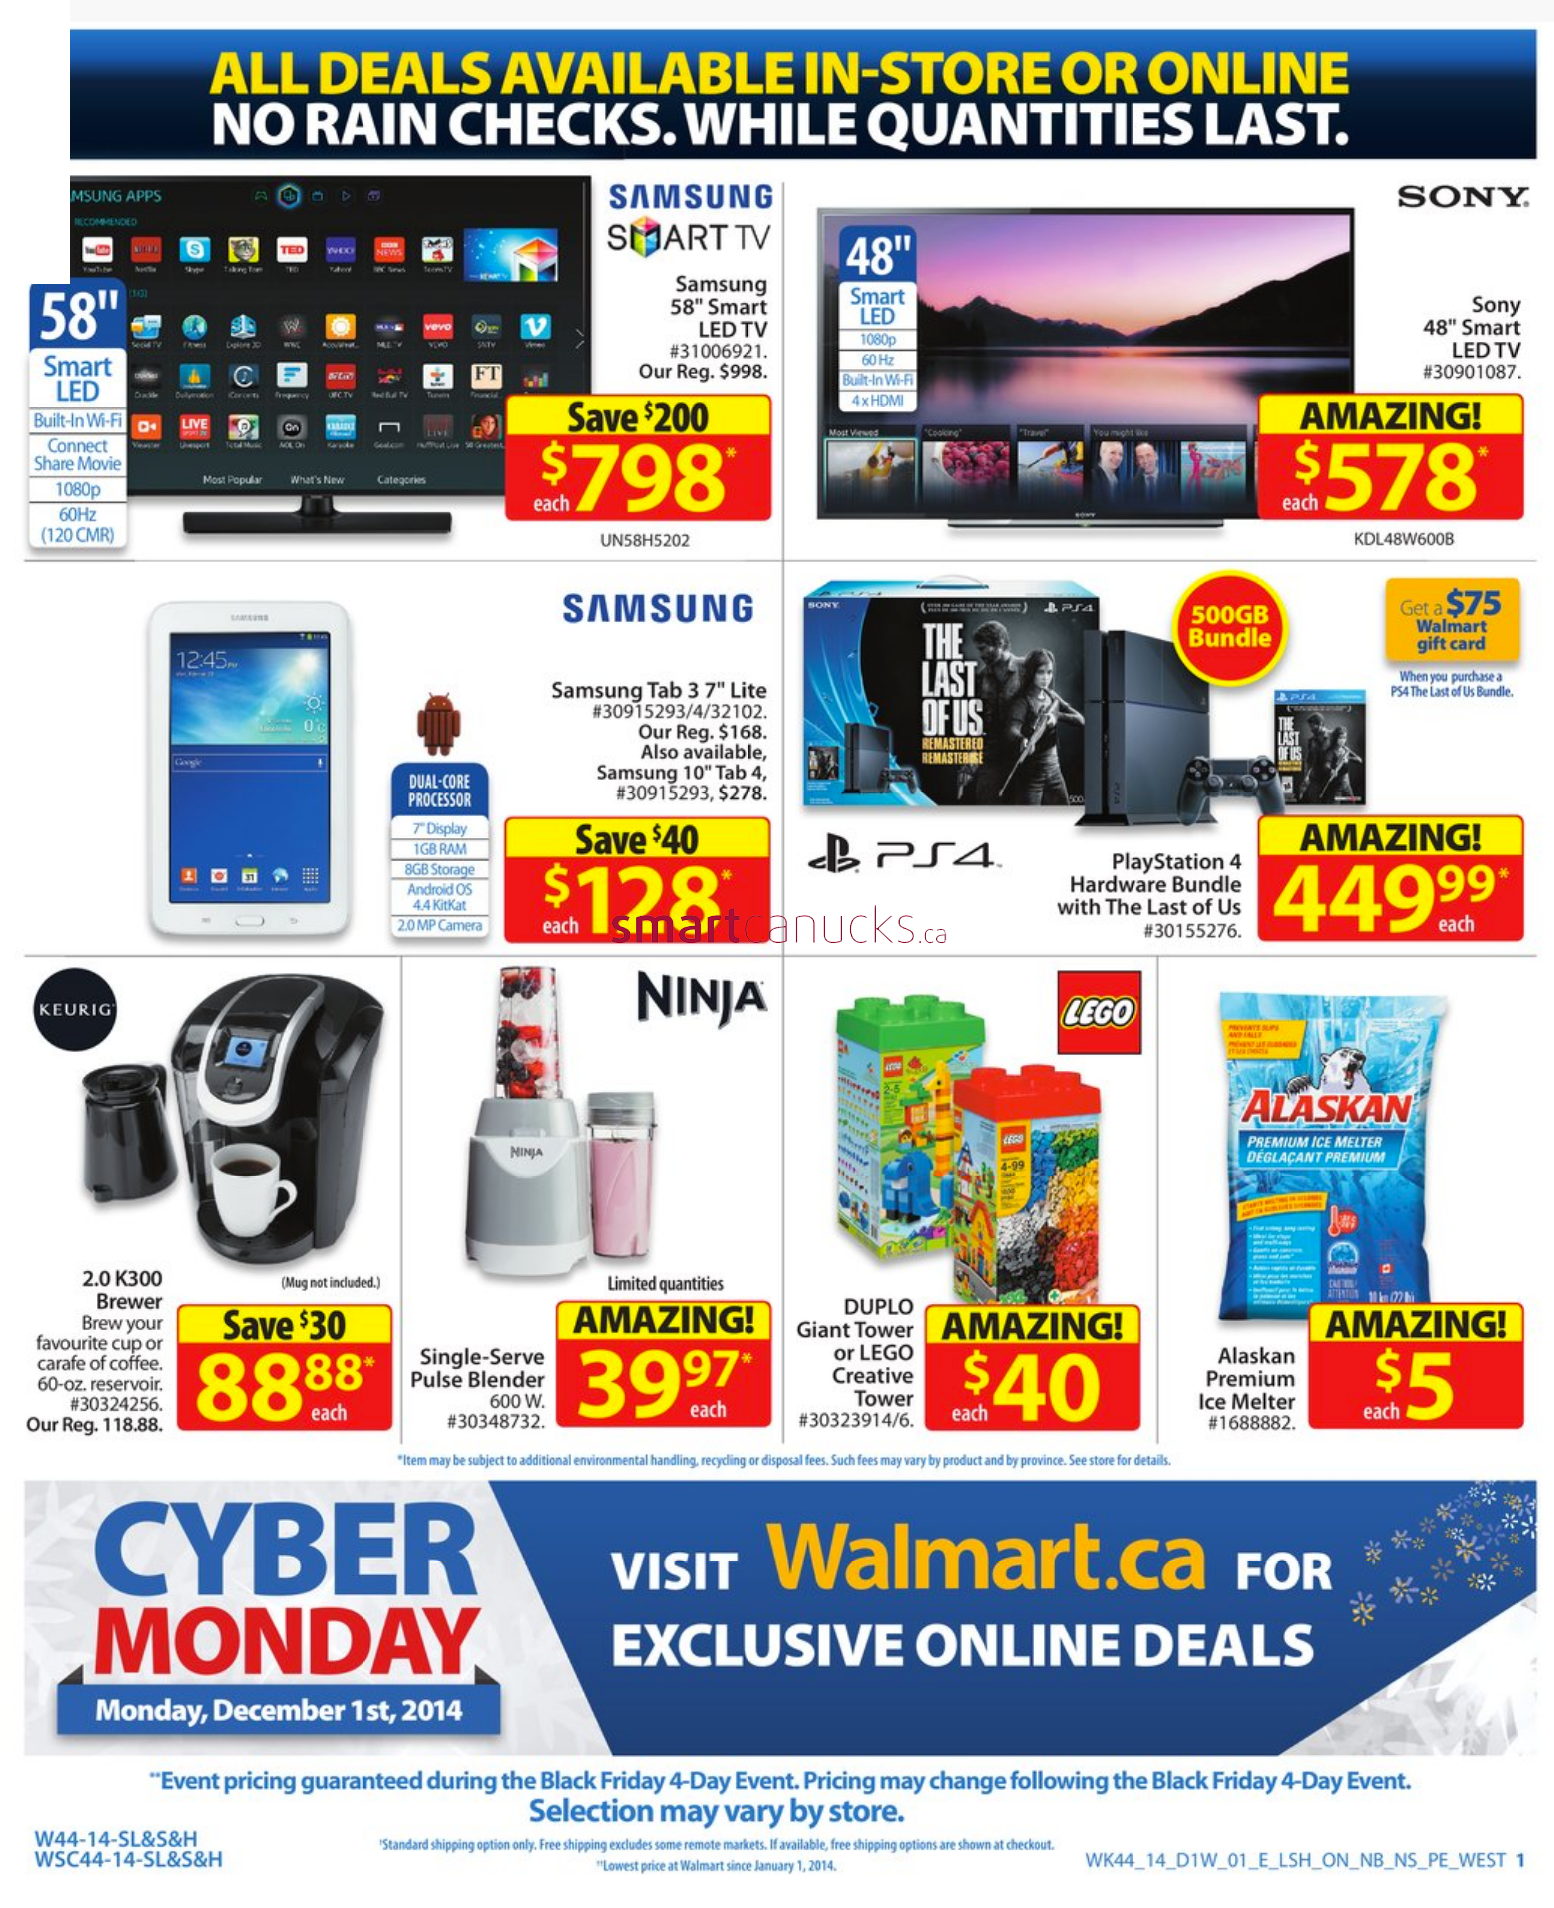 Thanksgiving Opens 6 p.m. Black Friday Staying open from Thanksgiving until local close Walmart is the most anticipated Black Friday ad every year – and for a good reason. With a variety of mind-blowing deals and discounts both online and in stores, it's your one-stop shop for the Biggest Shopping Day of the Year/5().